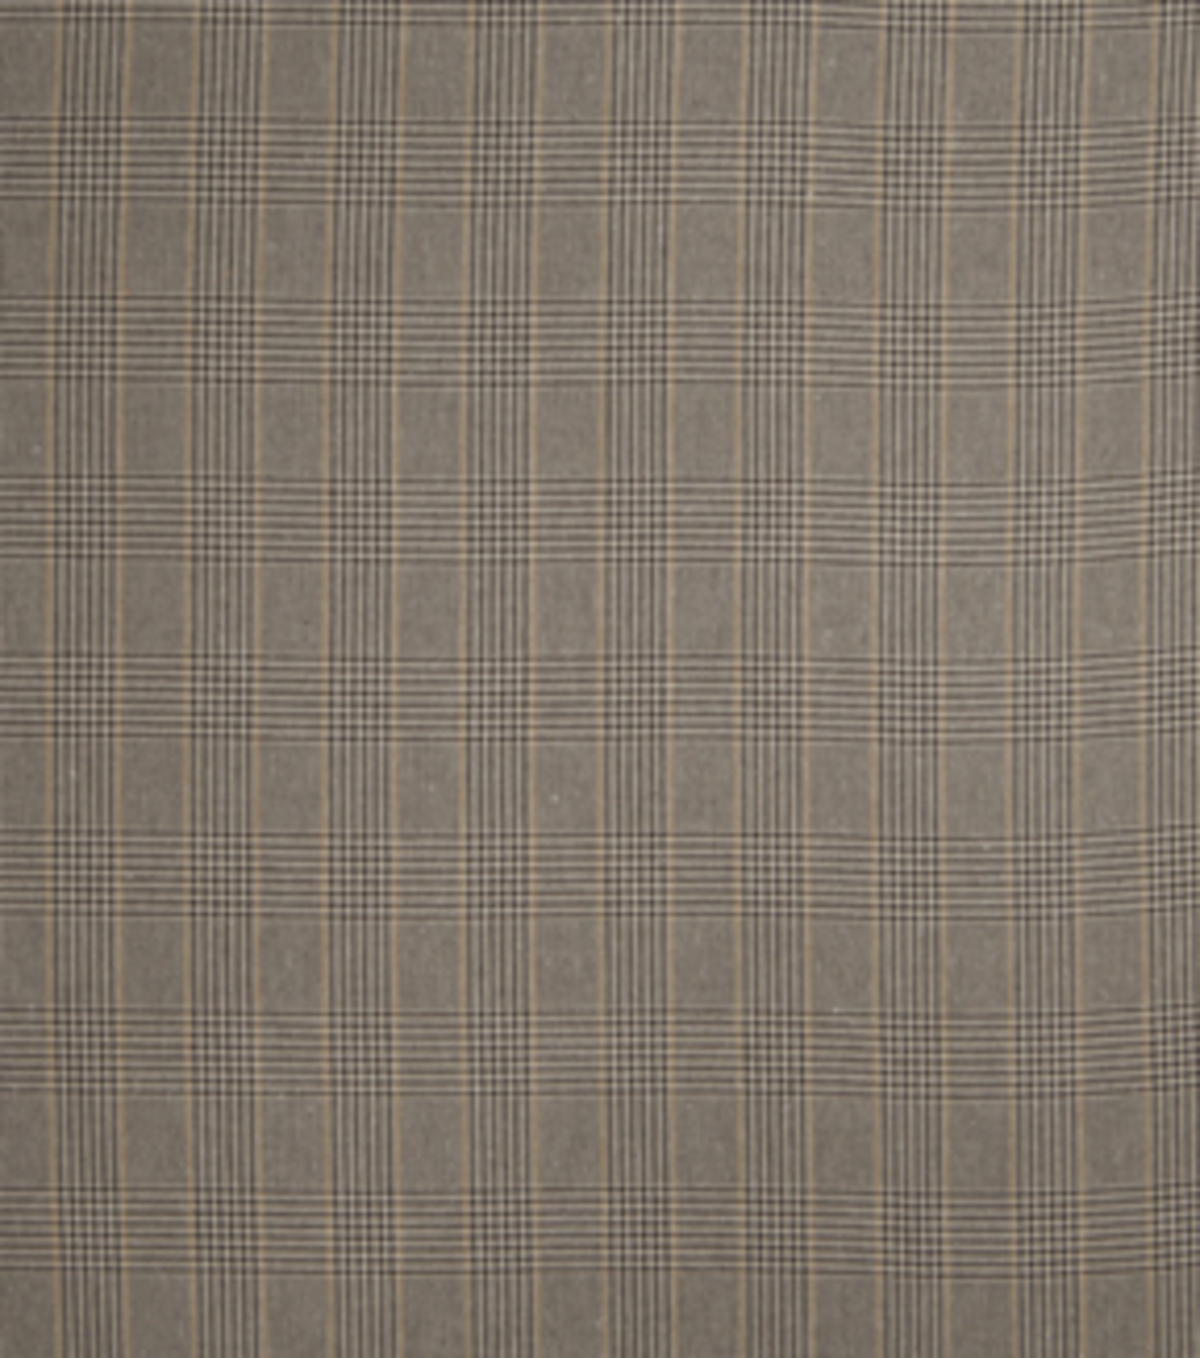 Home Decor 8\u0022x8\u0022 Fabric Swatch-Eaton Square Hollice Flint